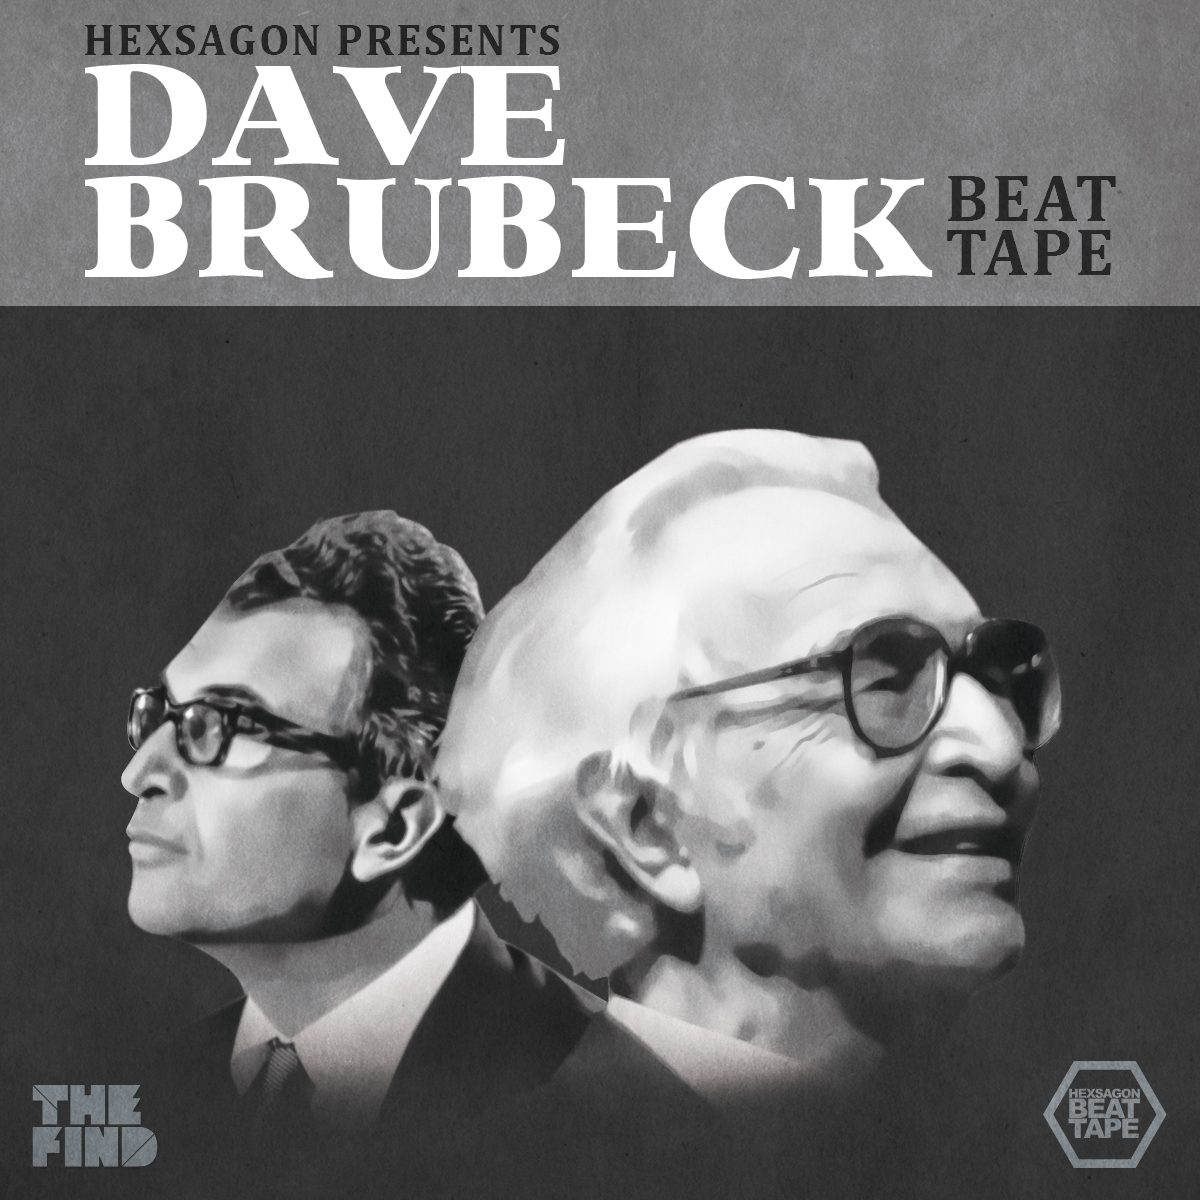 Free Download: Hexsagon & The Find Present… – Dave Brubeck Beat Tape